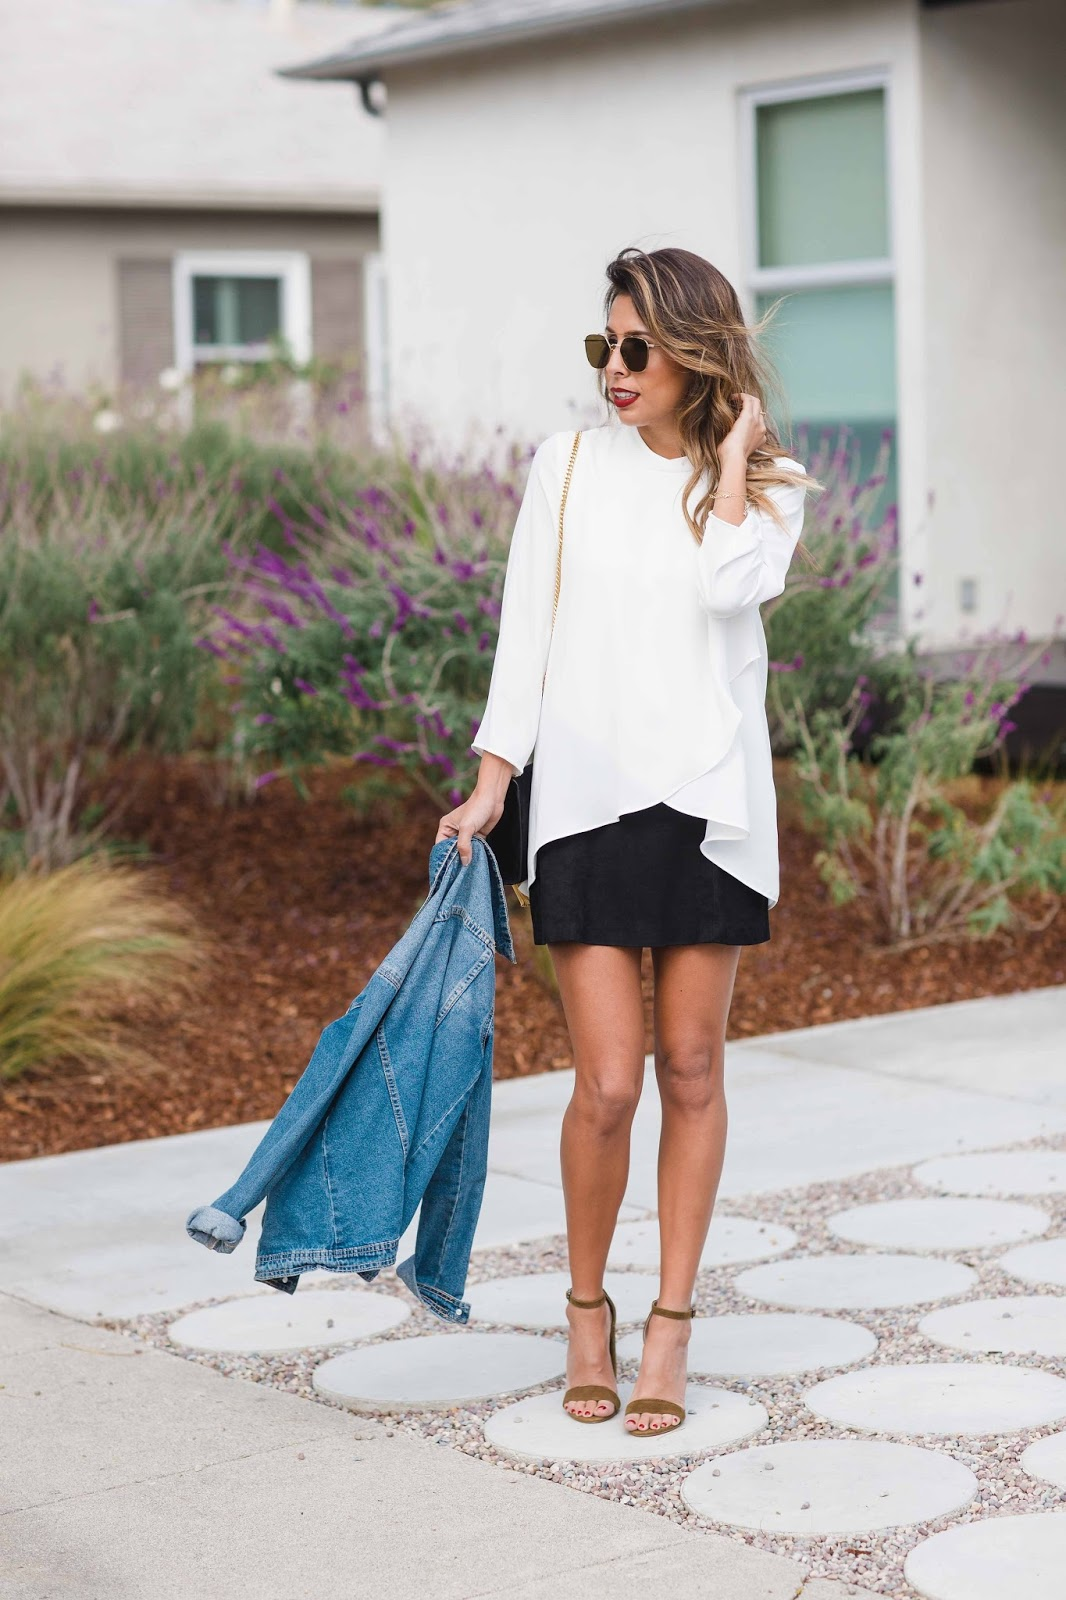 how to wear black mini skirt, ysl velvet bag, how to wear black and white outfit